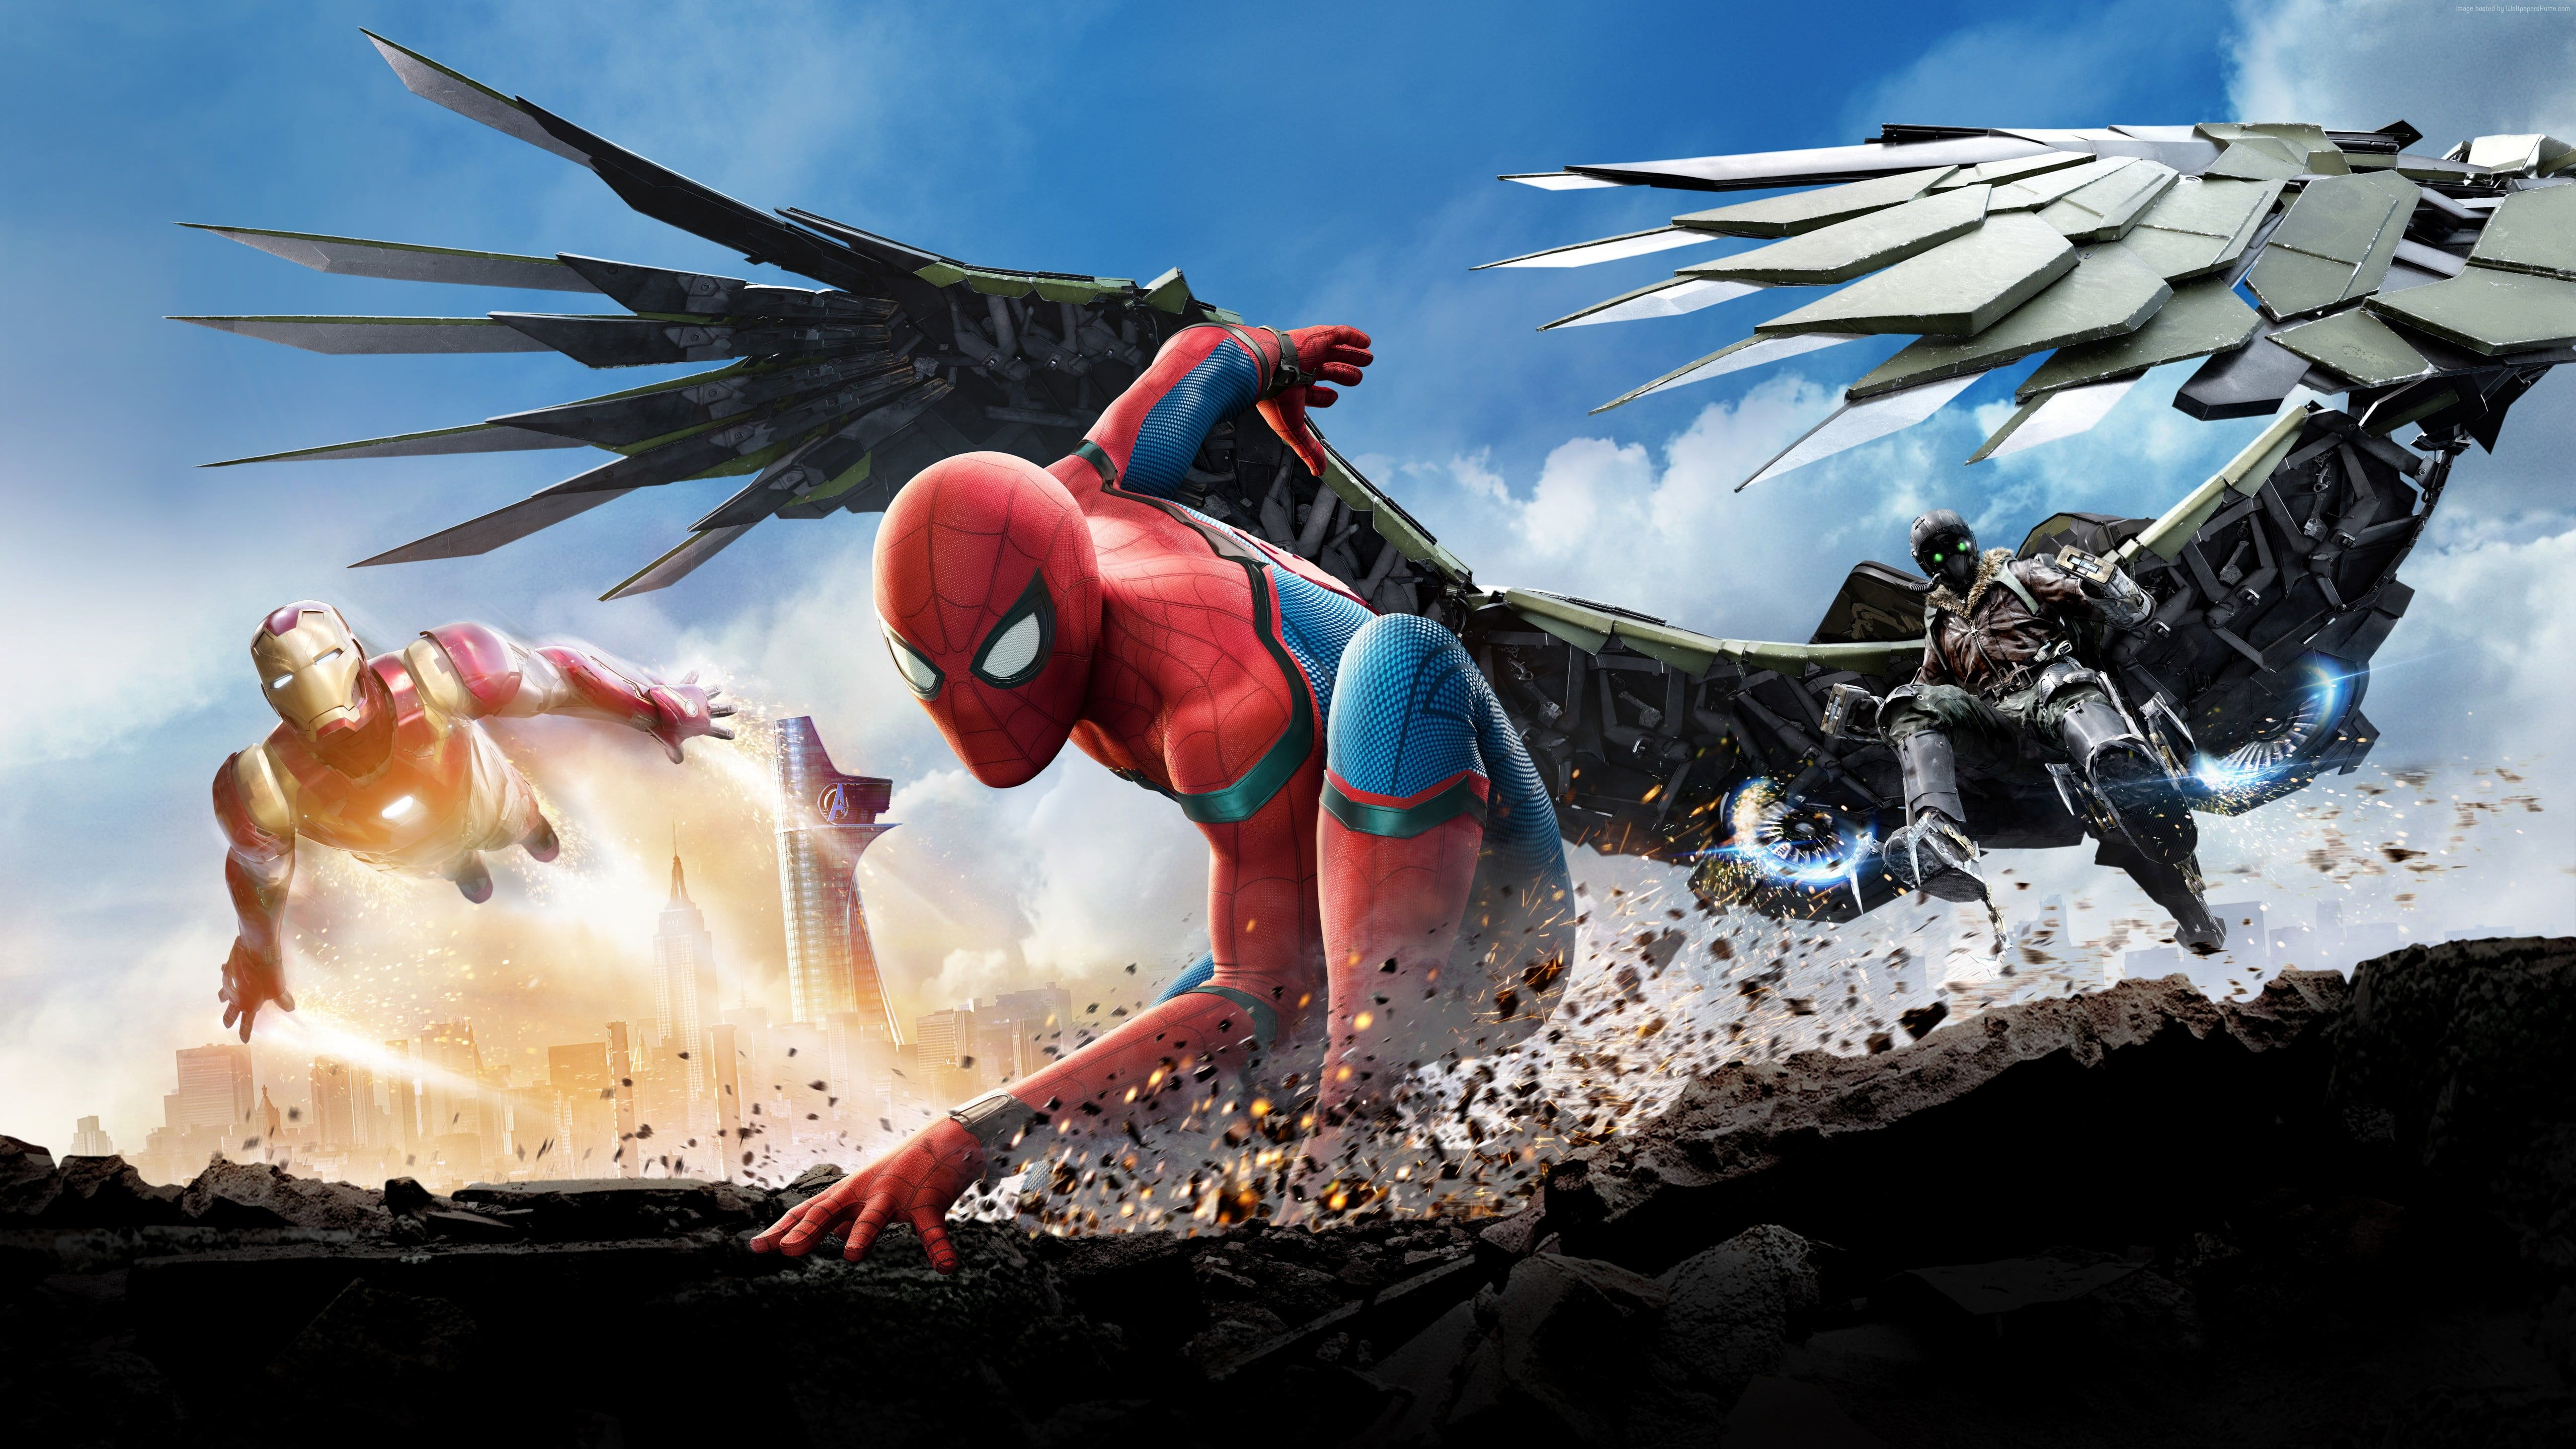 Marvel Spider Man Iron Man And Falcon Wallpaper Spider Man Iron Man Superhero Spider Man Homecomi In 2020 Spiderman Homecoming Spider Man Homecoming 2017 Spiderman